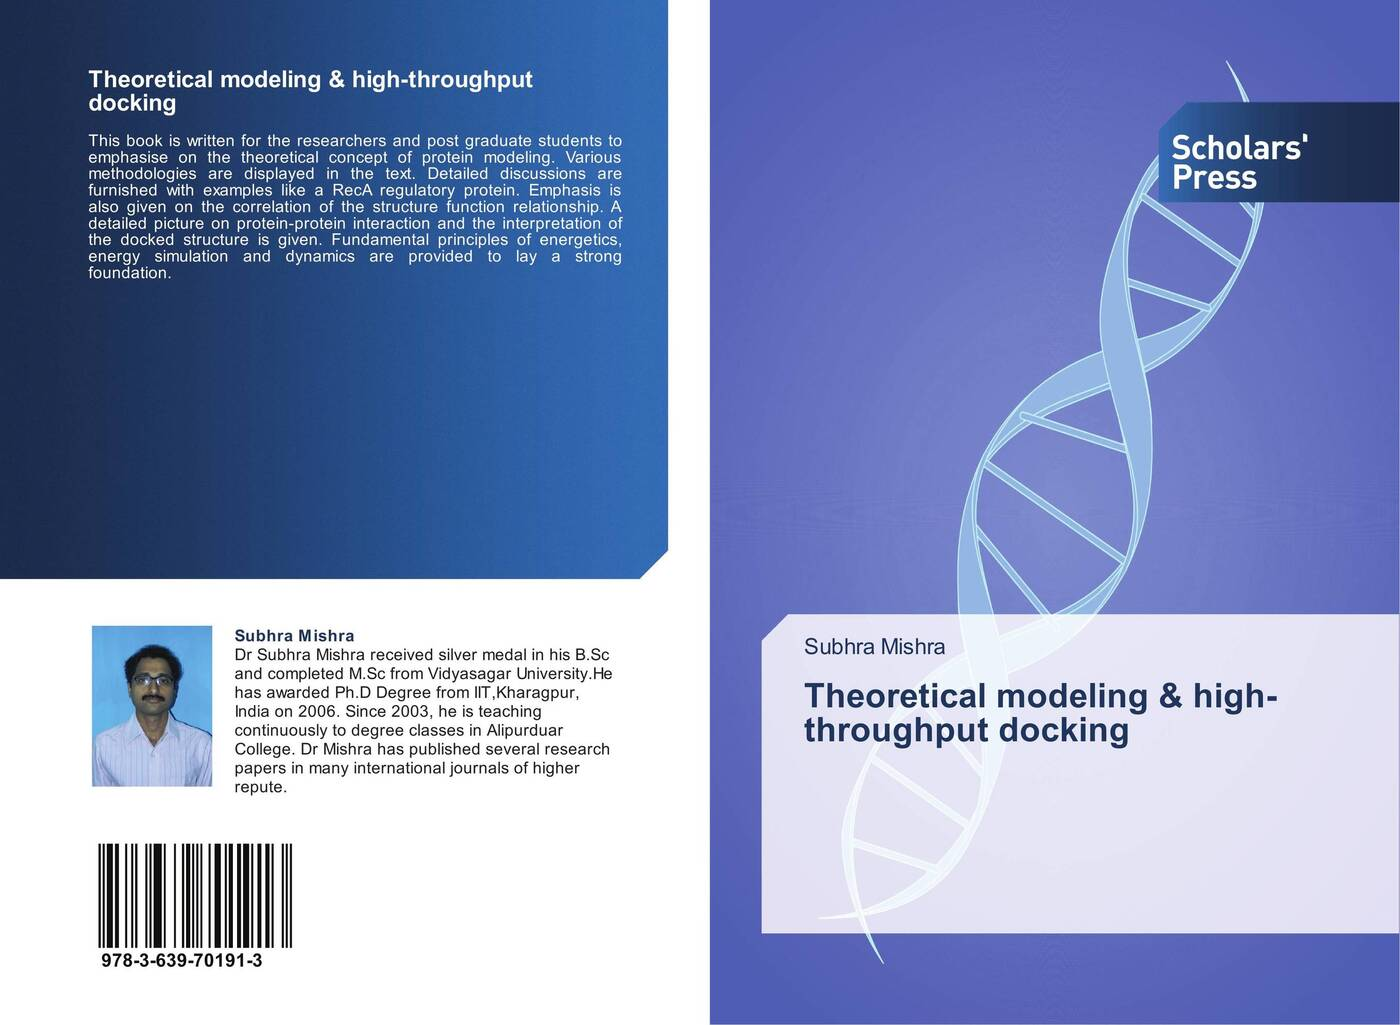 Subhra Mishra Theoretical modeling & high-throughput docking the high protein cookbook